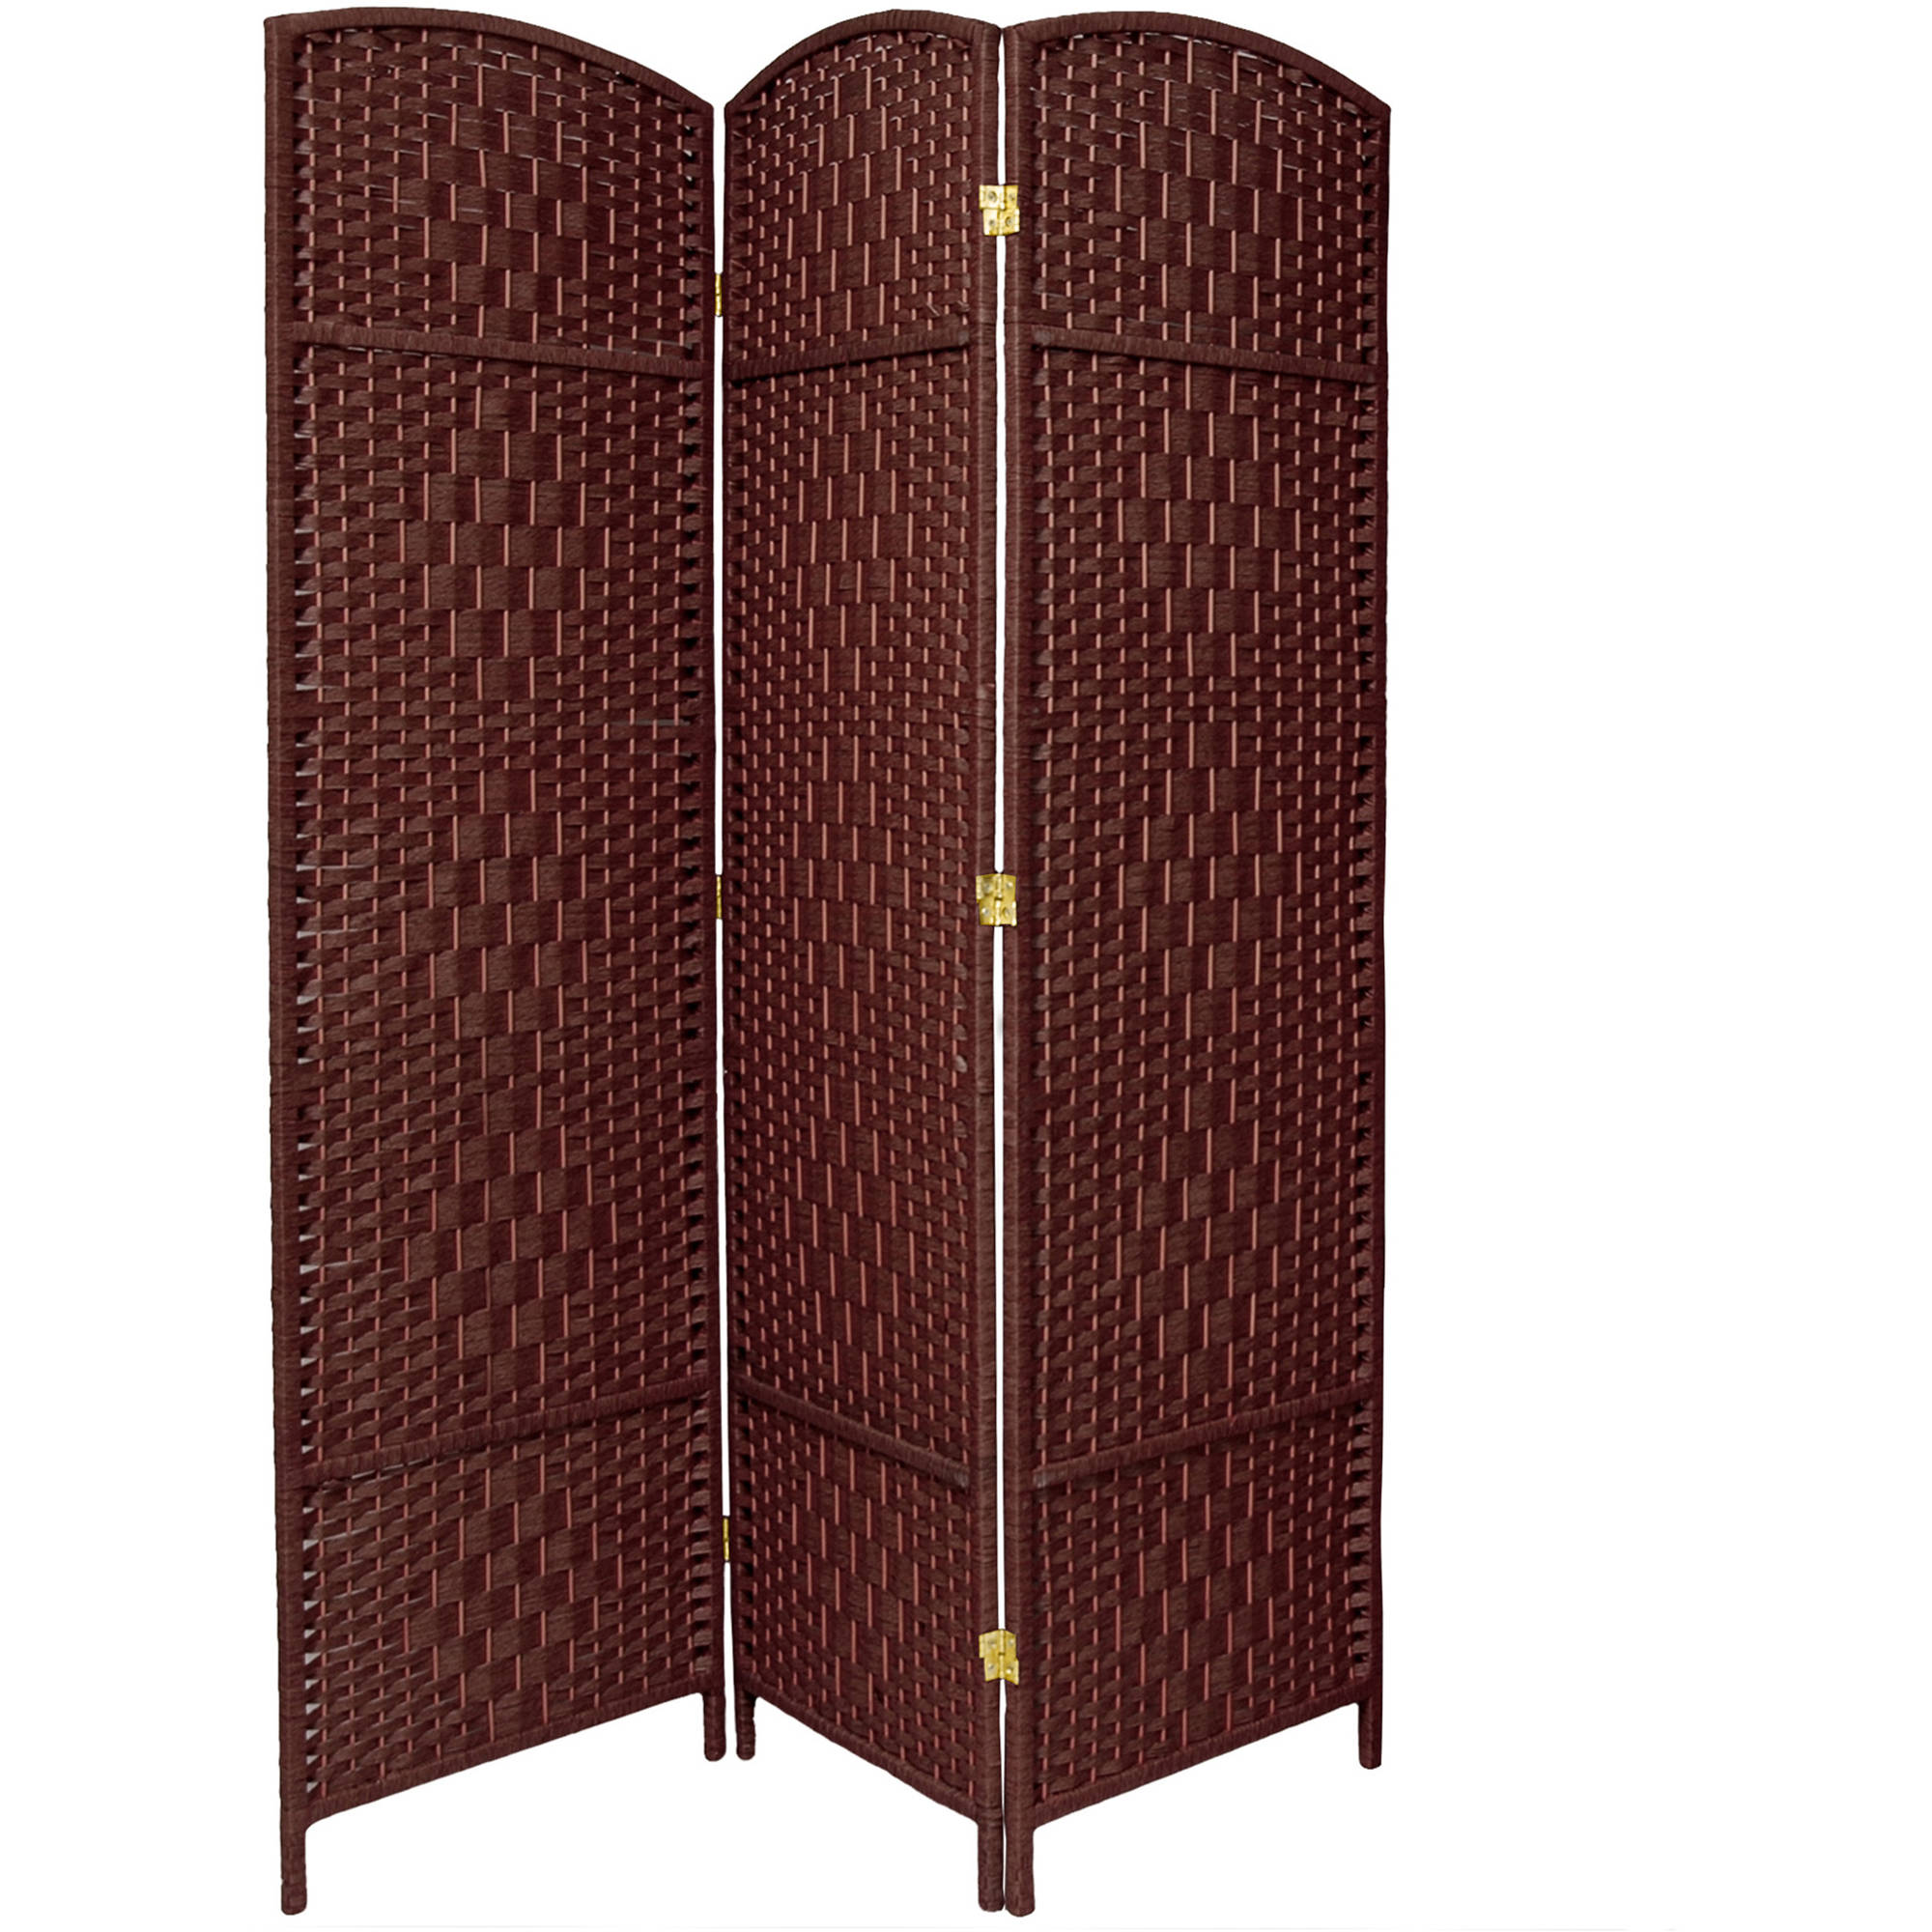 6' Tall Diamond Weave Fiber Room Divider